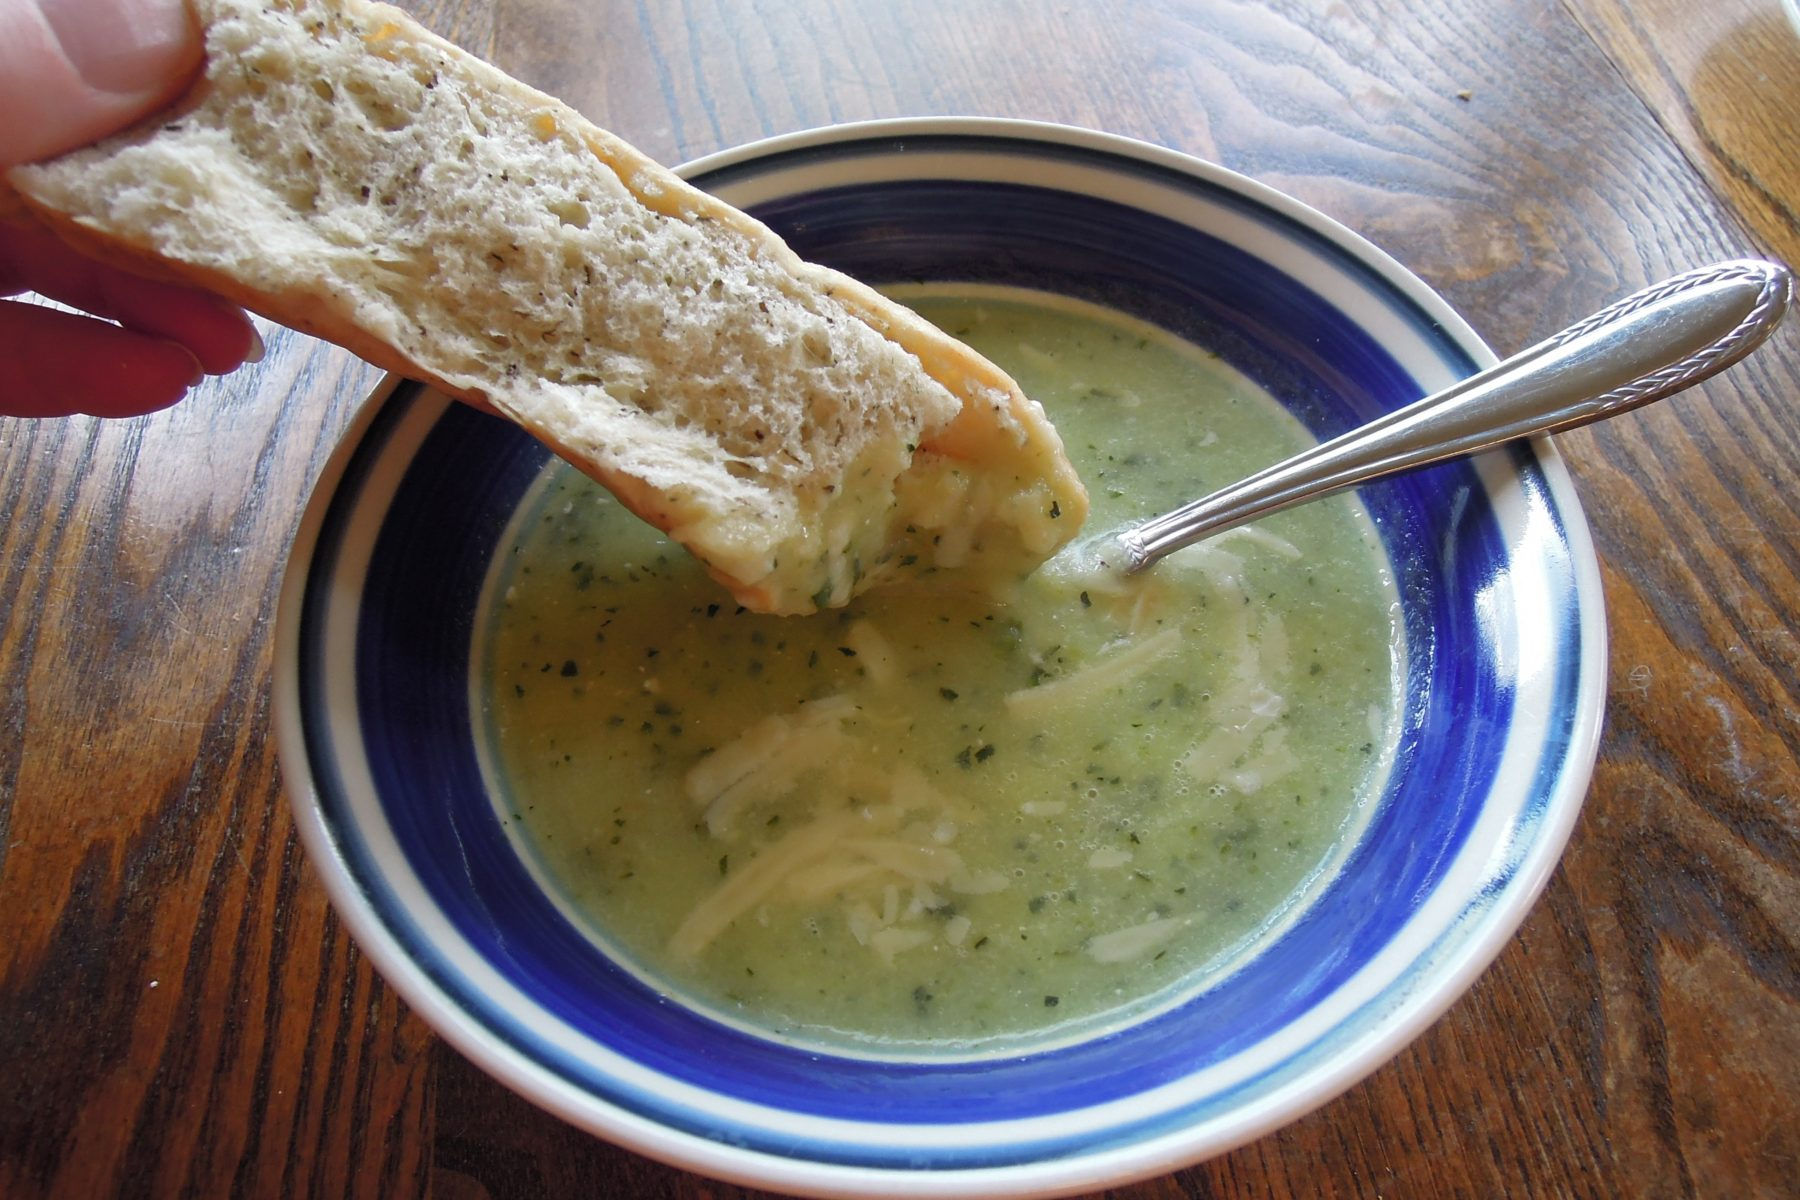 warm soup and bread